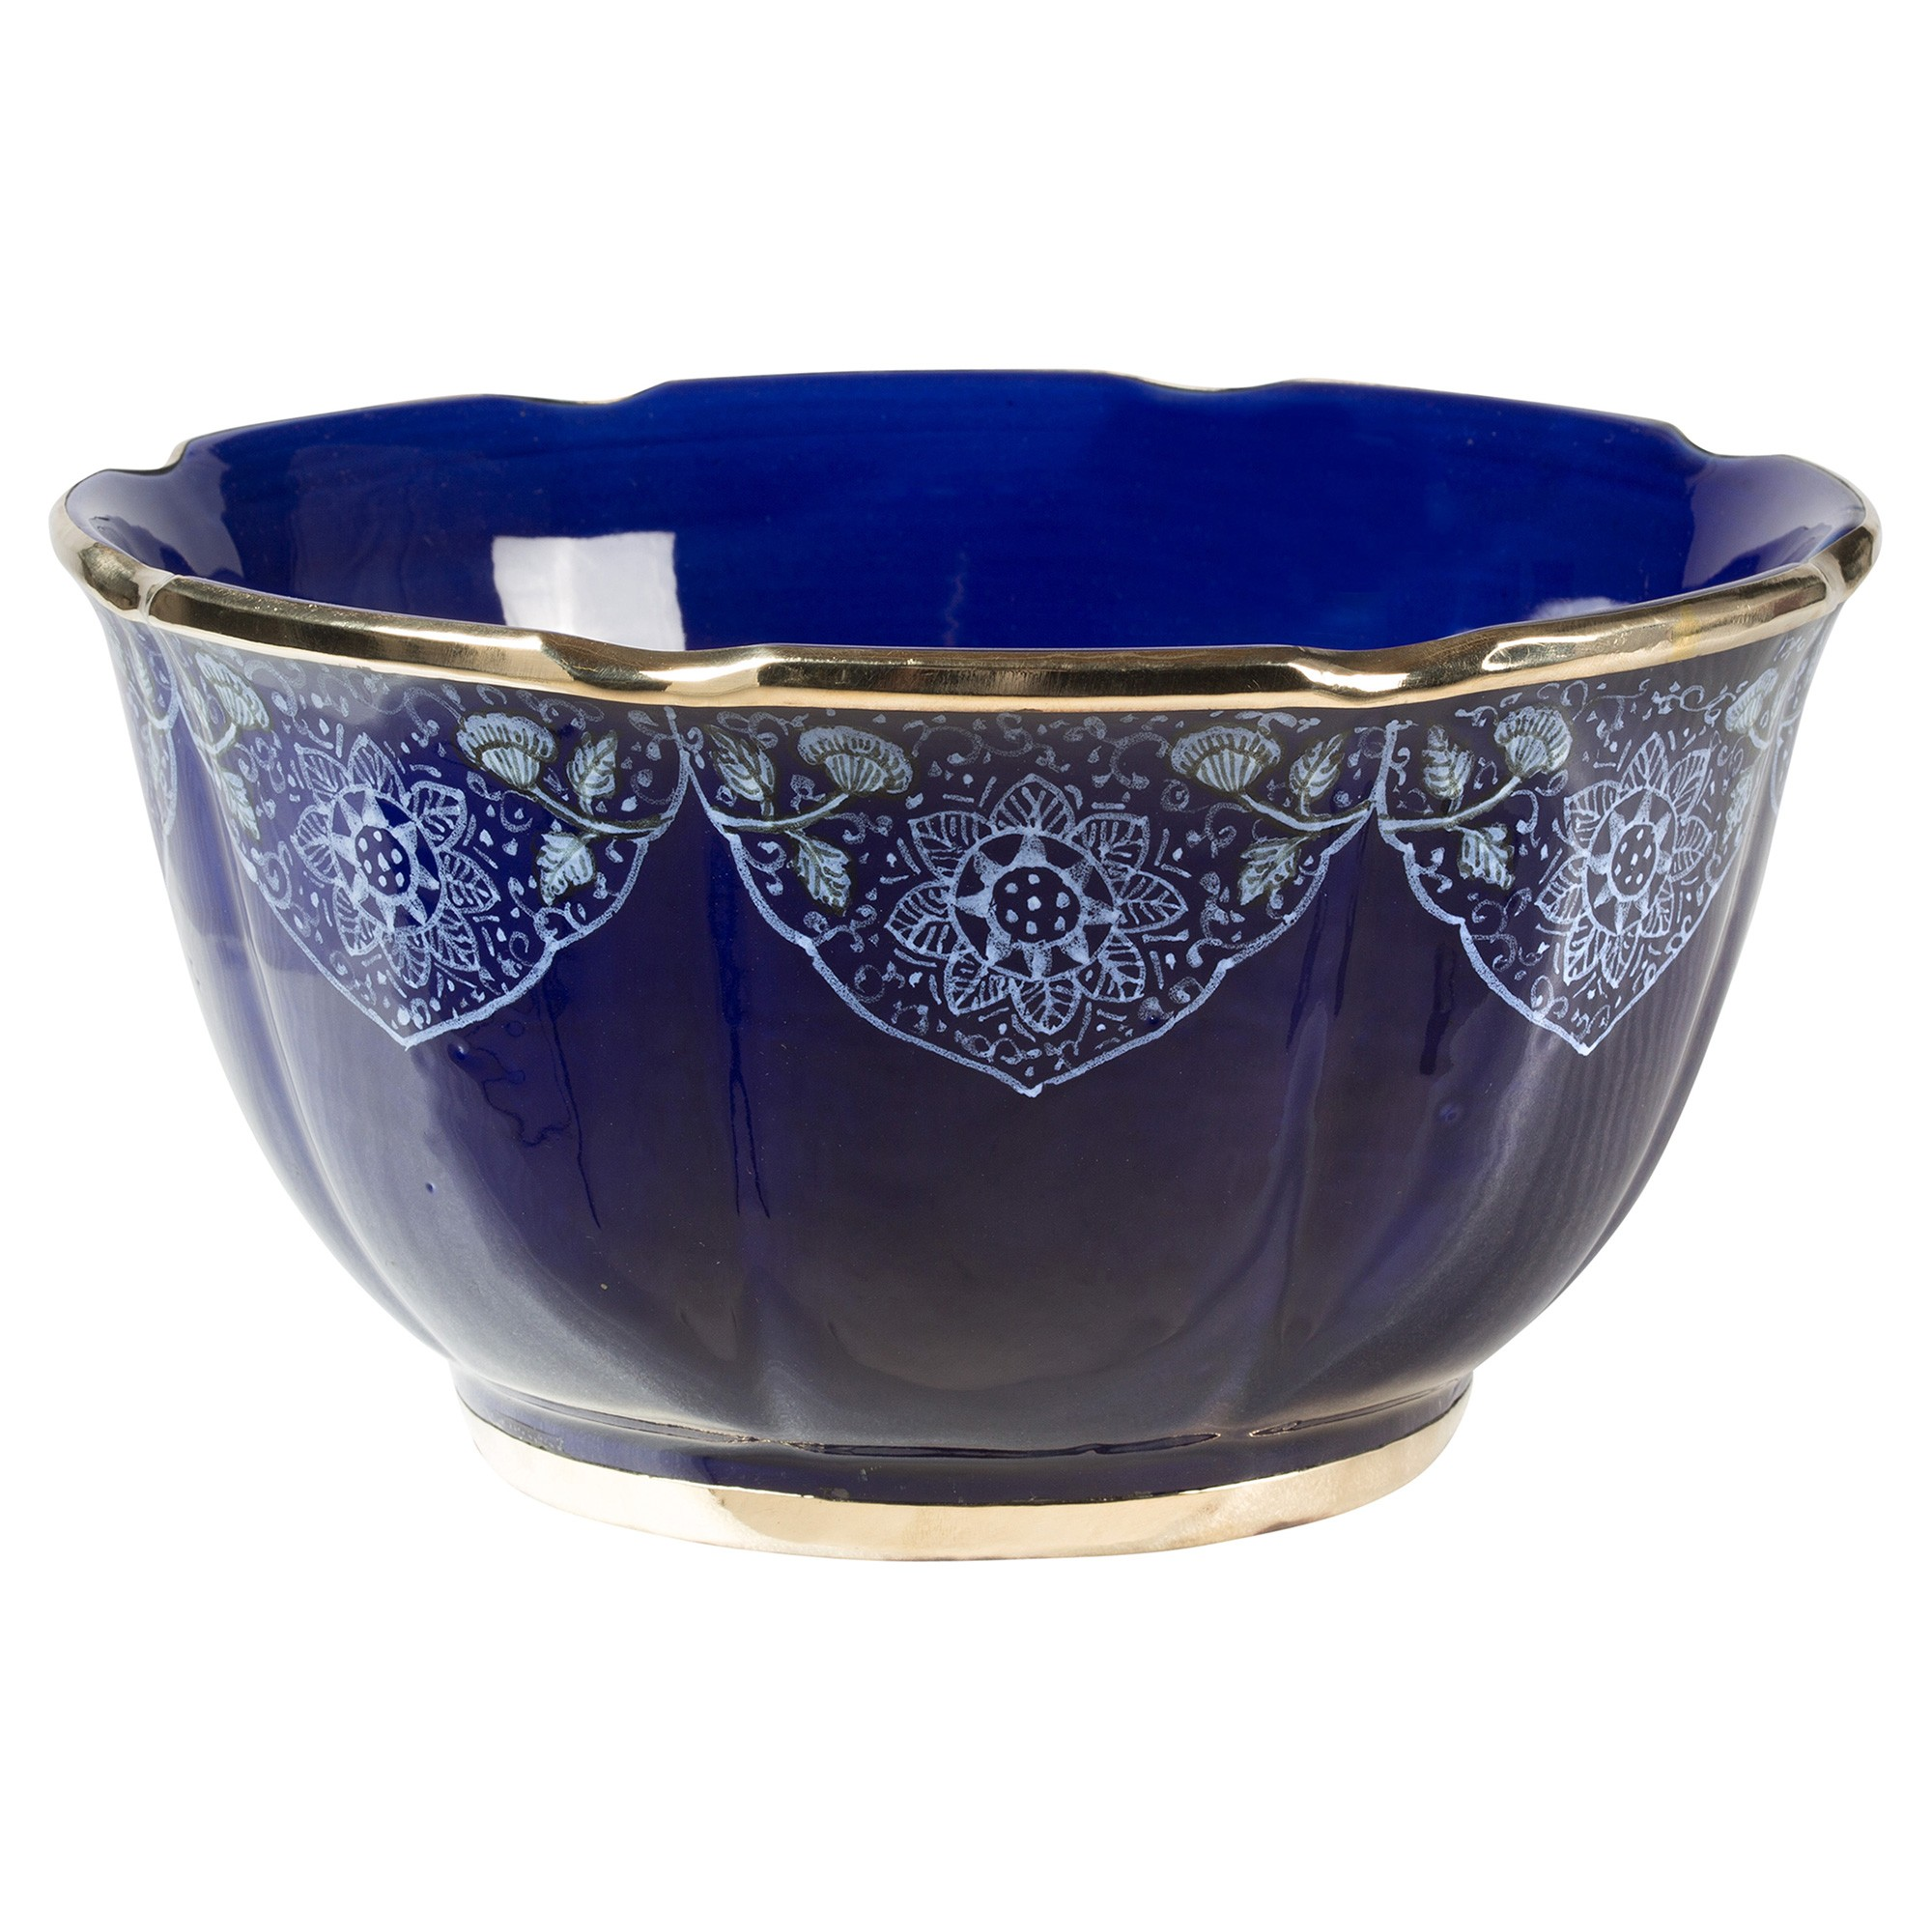 Odisha Ceramic Scalloped Bowl, Cobalt Blue